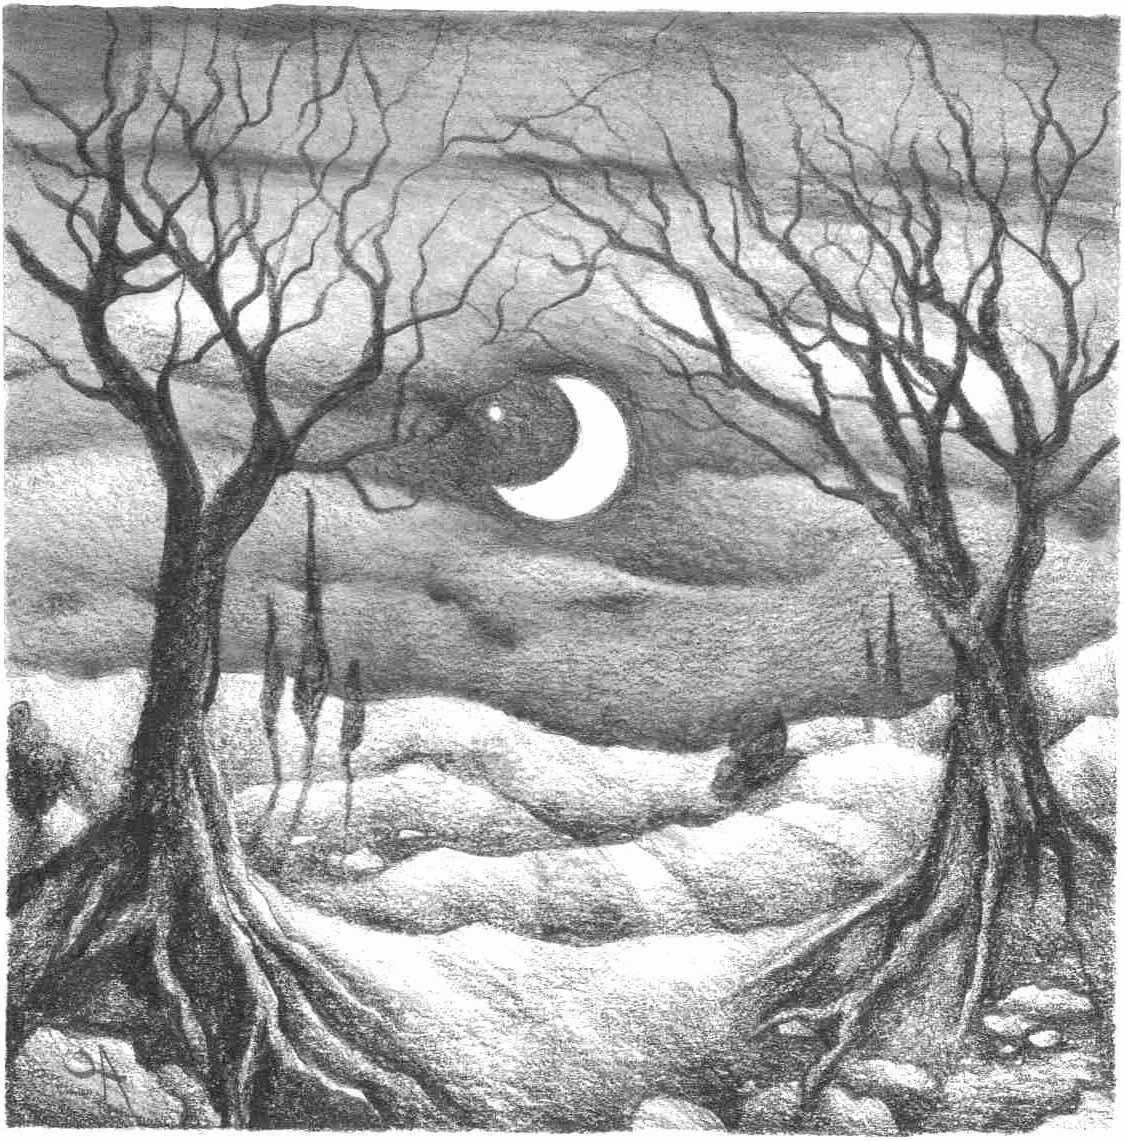 Pencil Sketches Of Nature Inspirational Nature Paintings Search Result at Paintingvalley